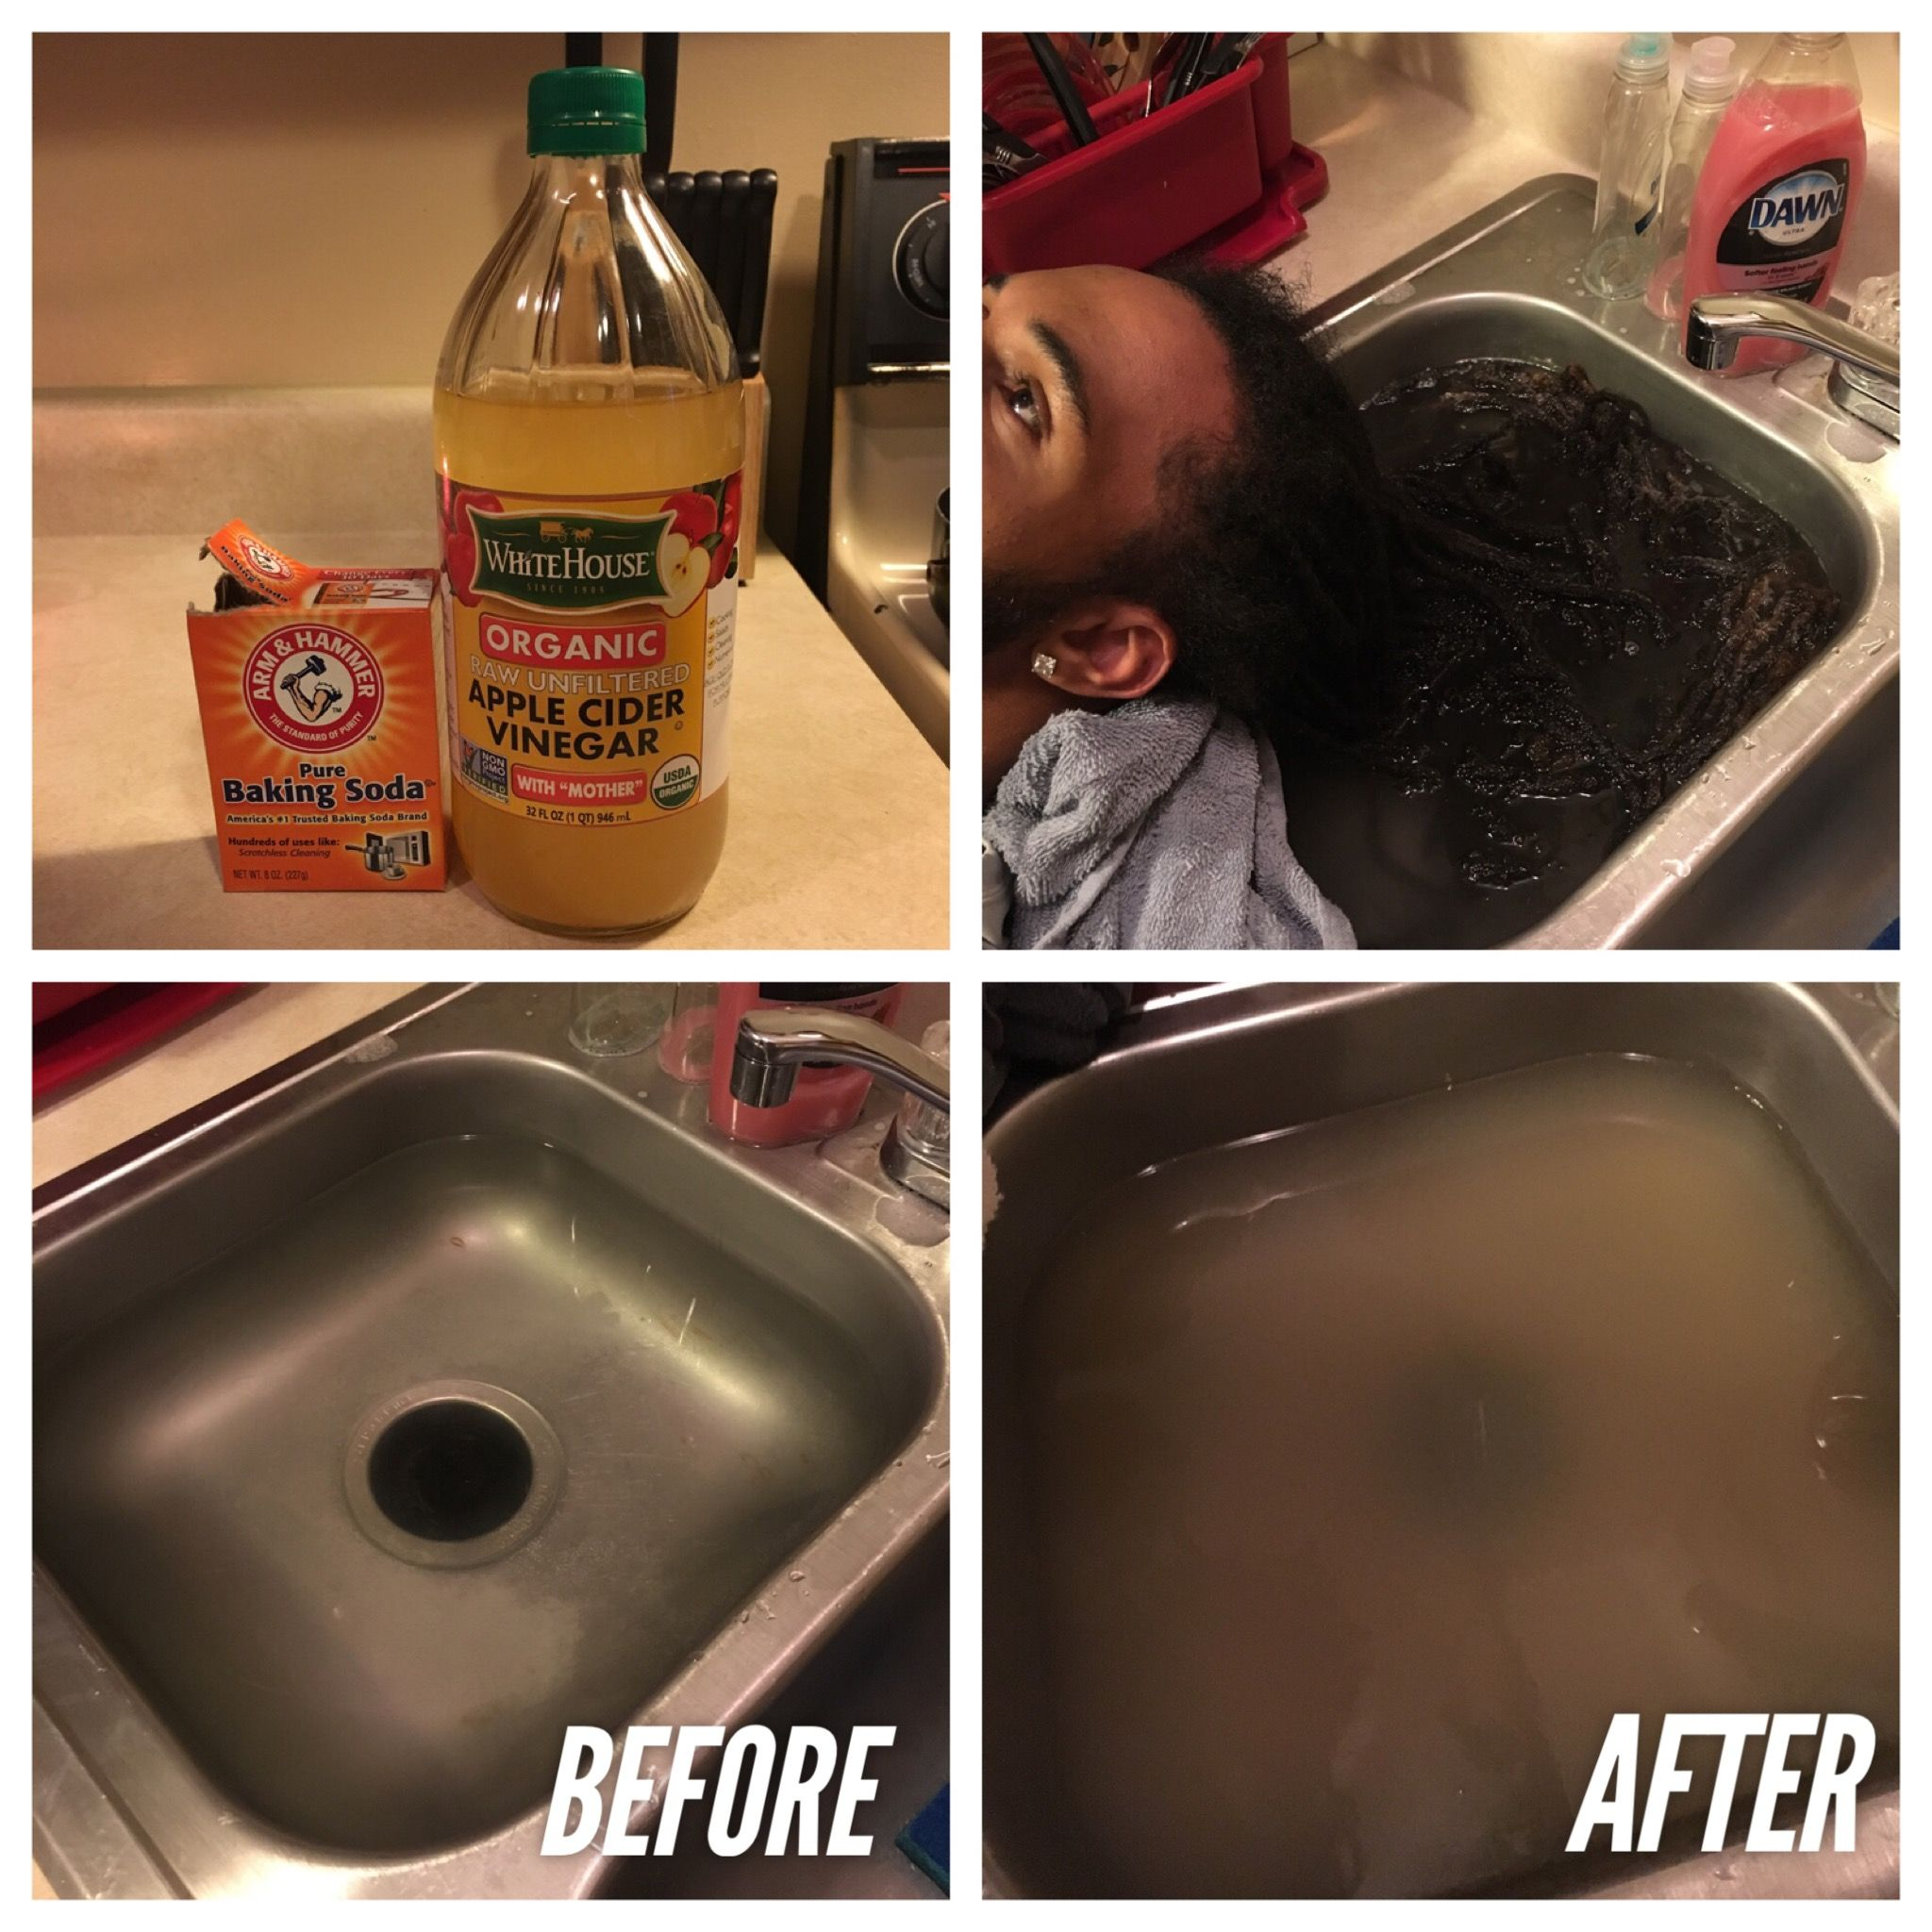 Dread Detox Pour 14 Pure Baking Soda And 34 Cup